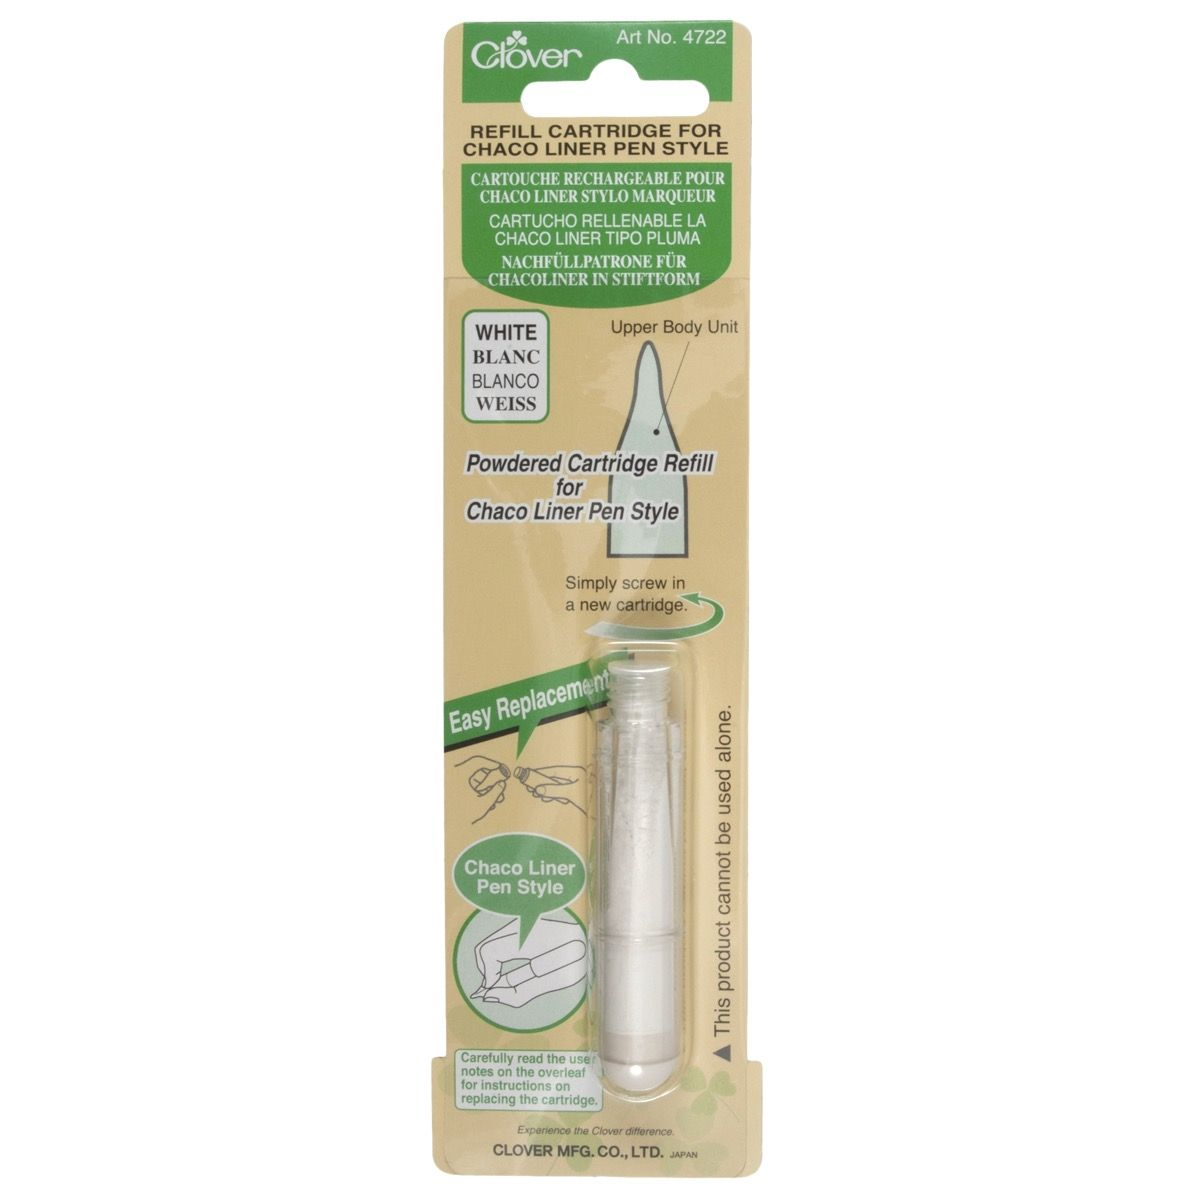 Clover Chaco Liner Pen Style Refill Cartridge - White